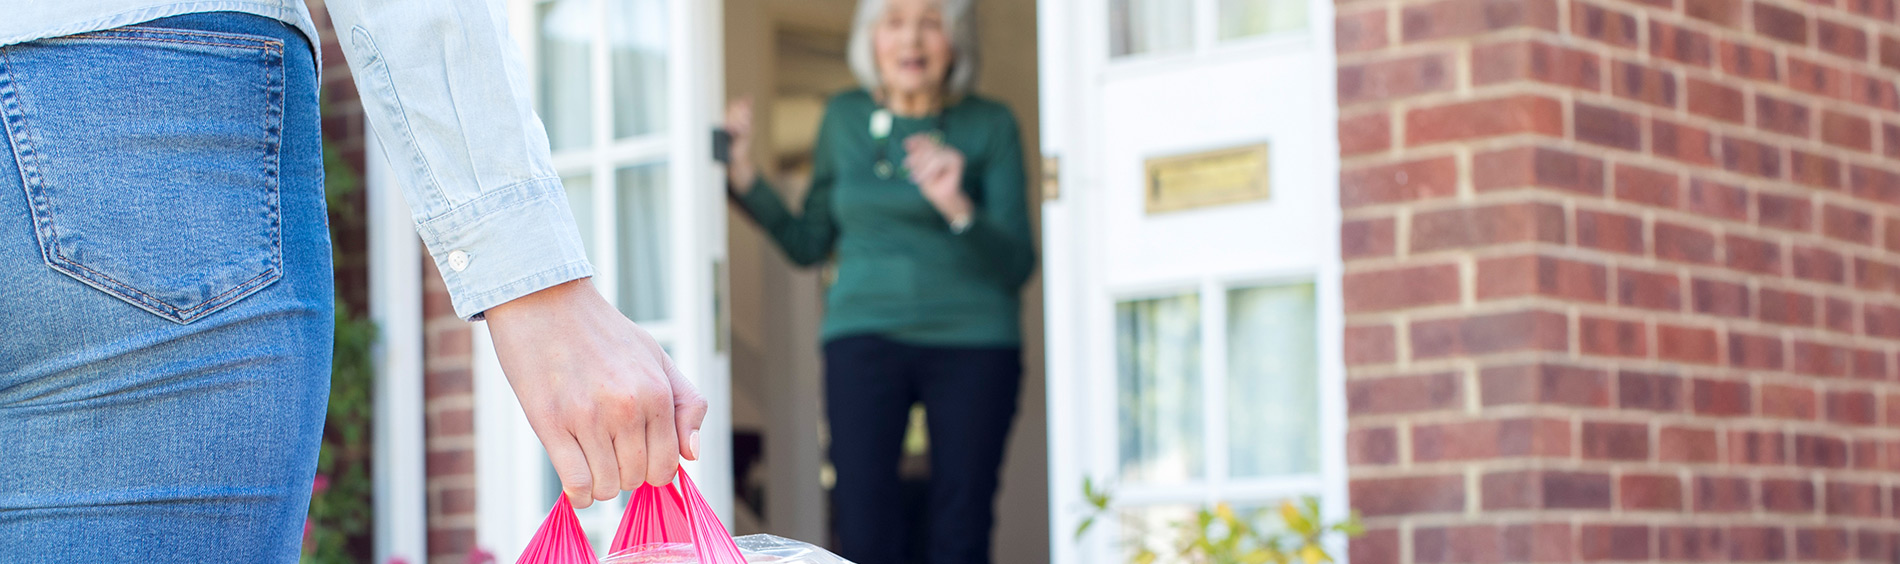 Connecting Seniors at Home